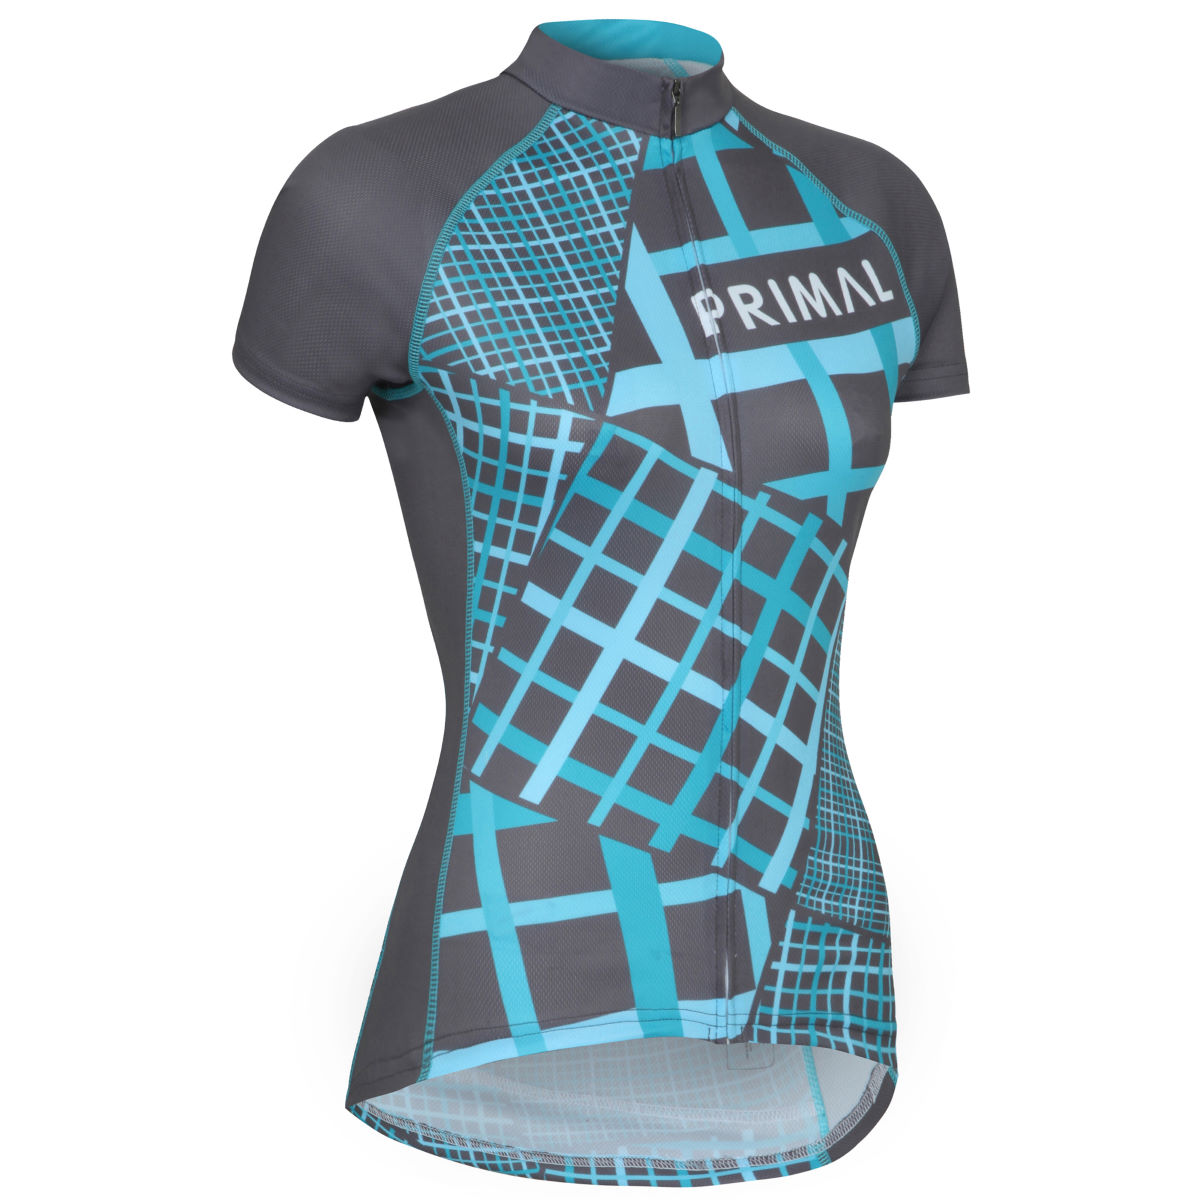 Maillot Femme Primal Lattice (coupe sportive) - XL Gris/Bleu